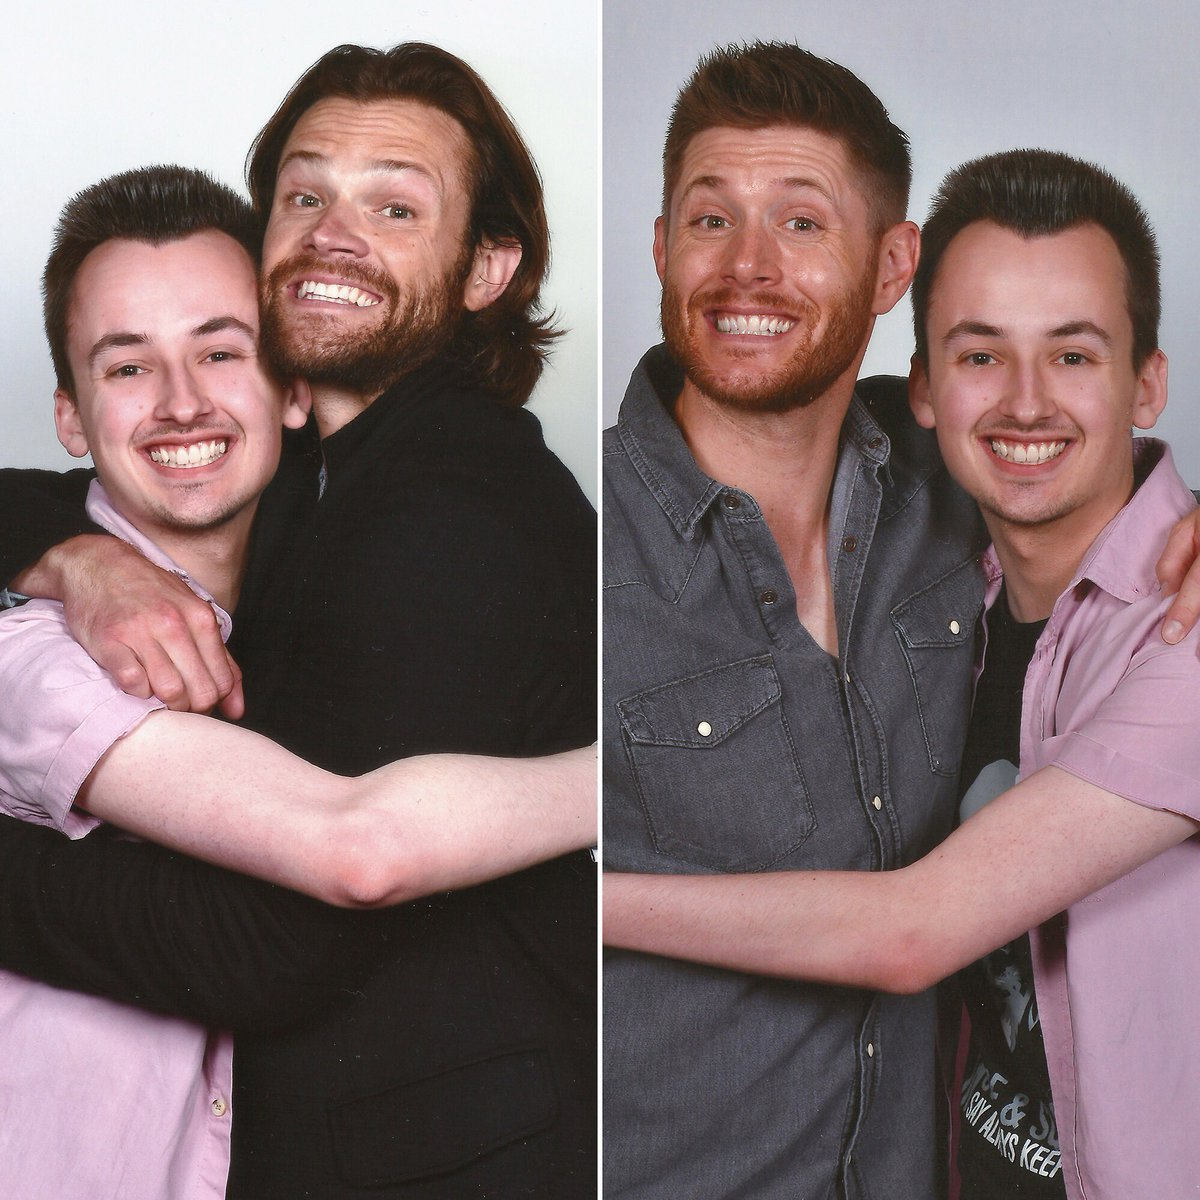 I wish I could relive #Asylum16